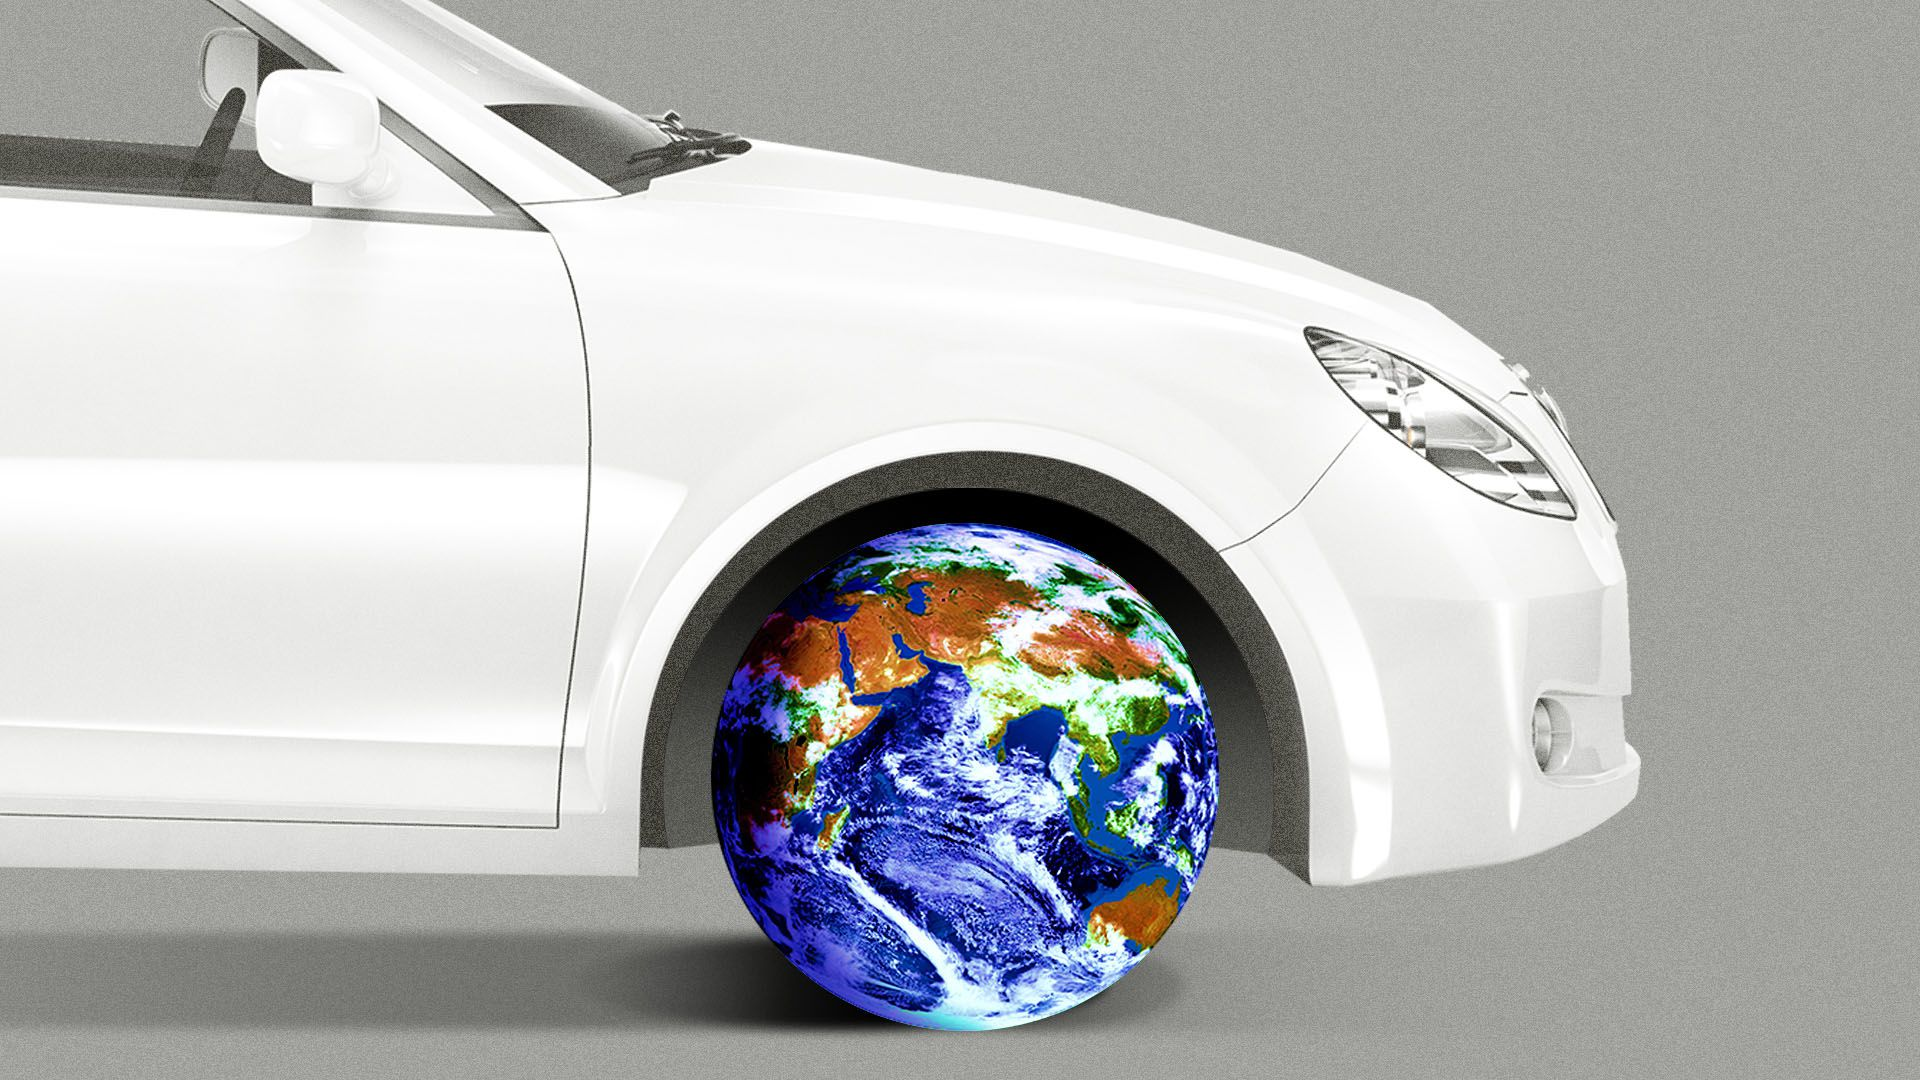 Illustration of a car with a globe for a wheel